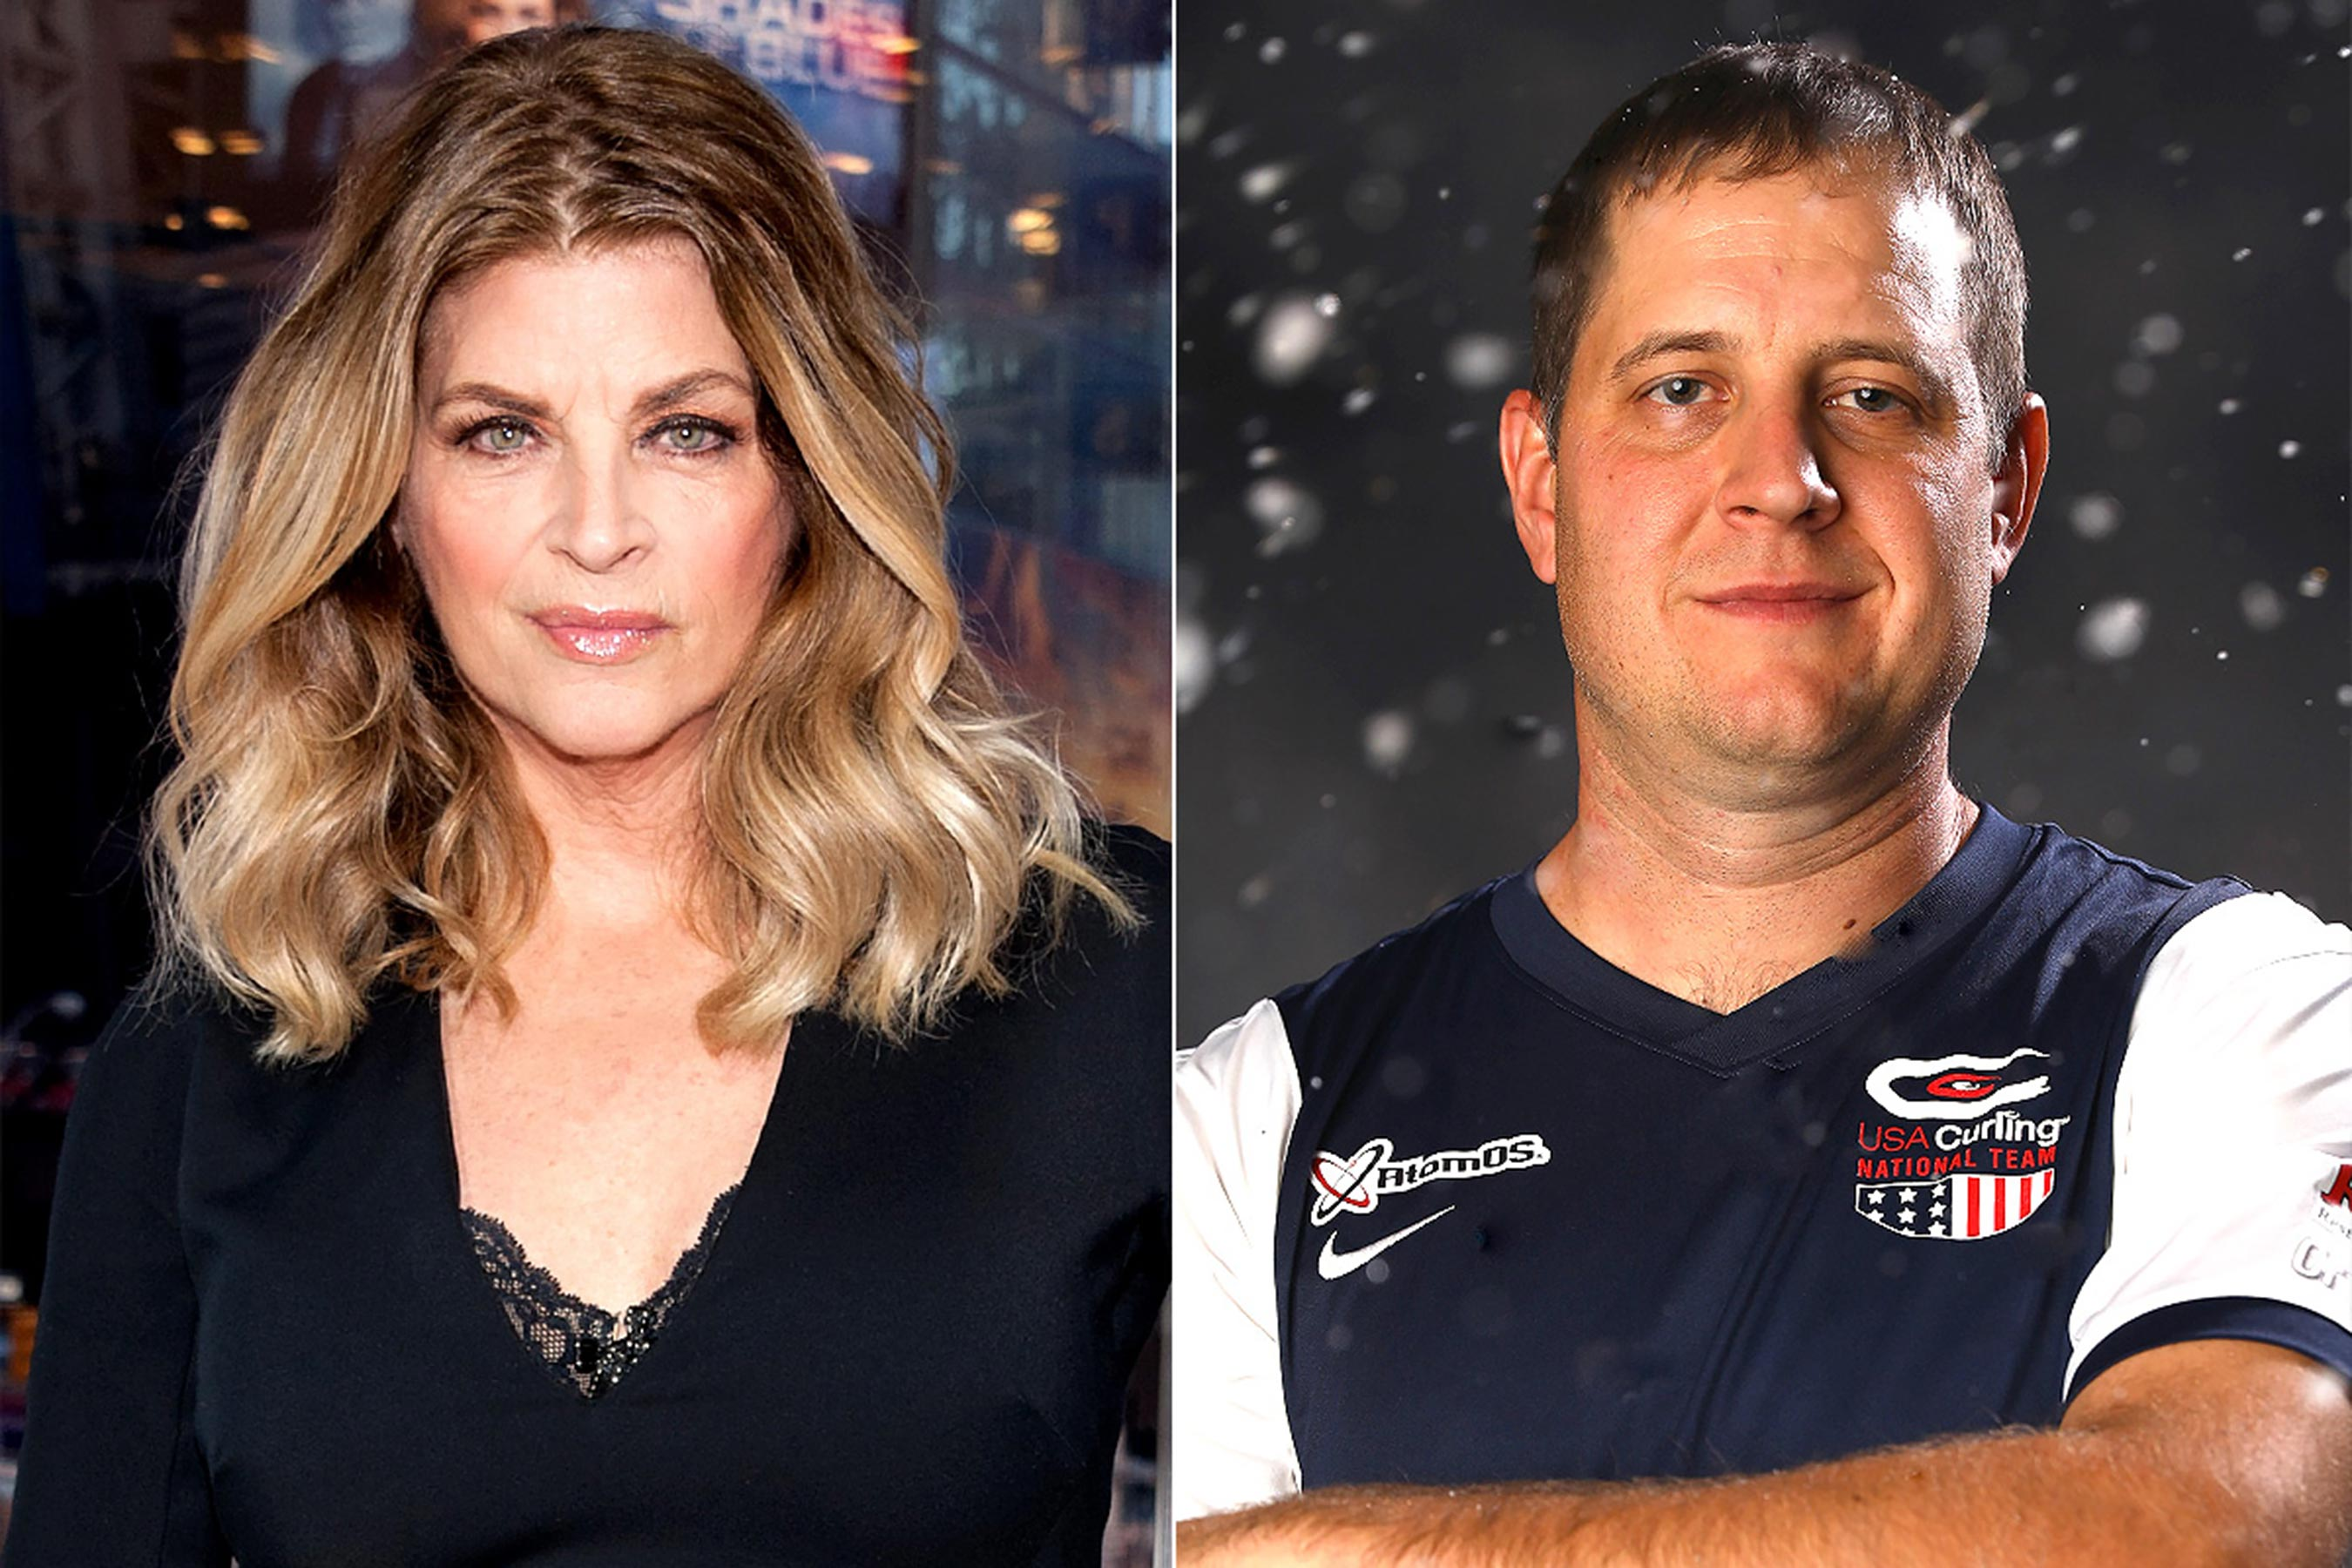 Olympic curlers slam Kirstie Alley after she calls sport boring